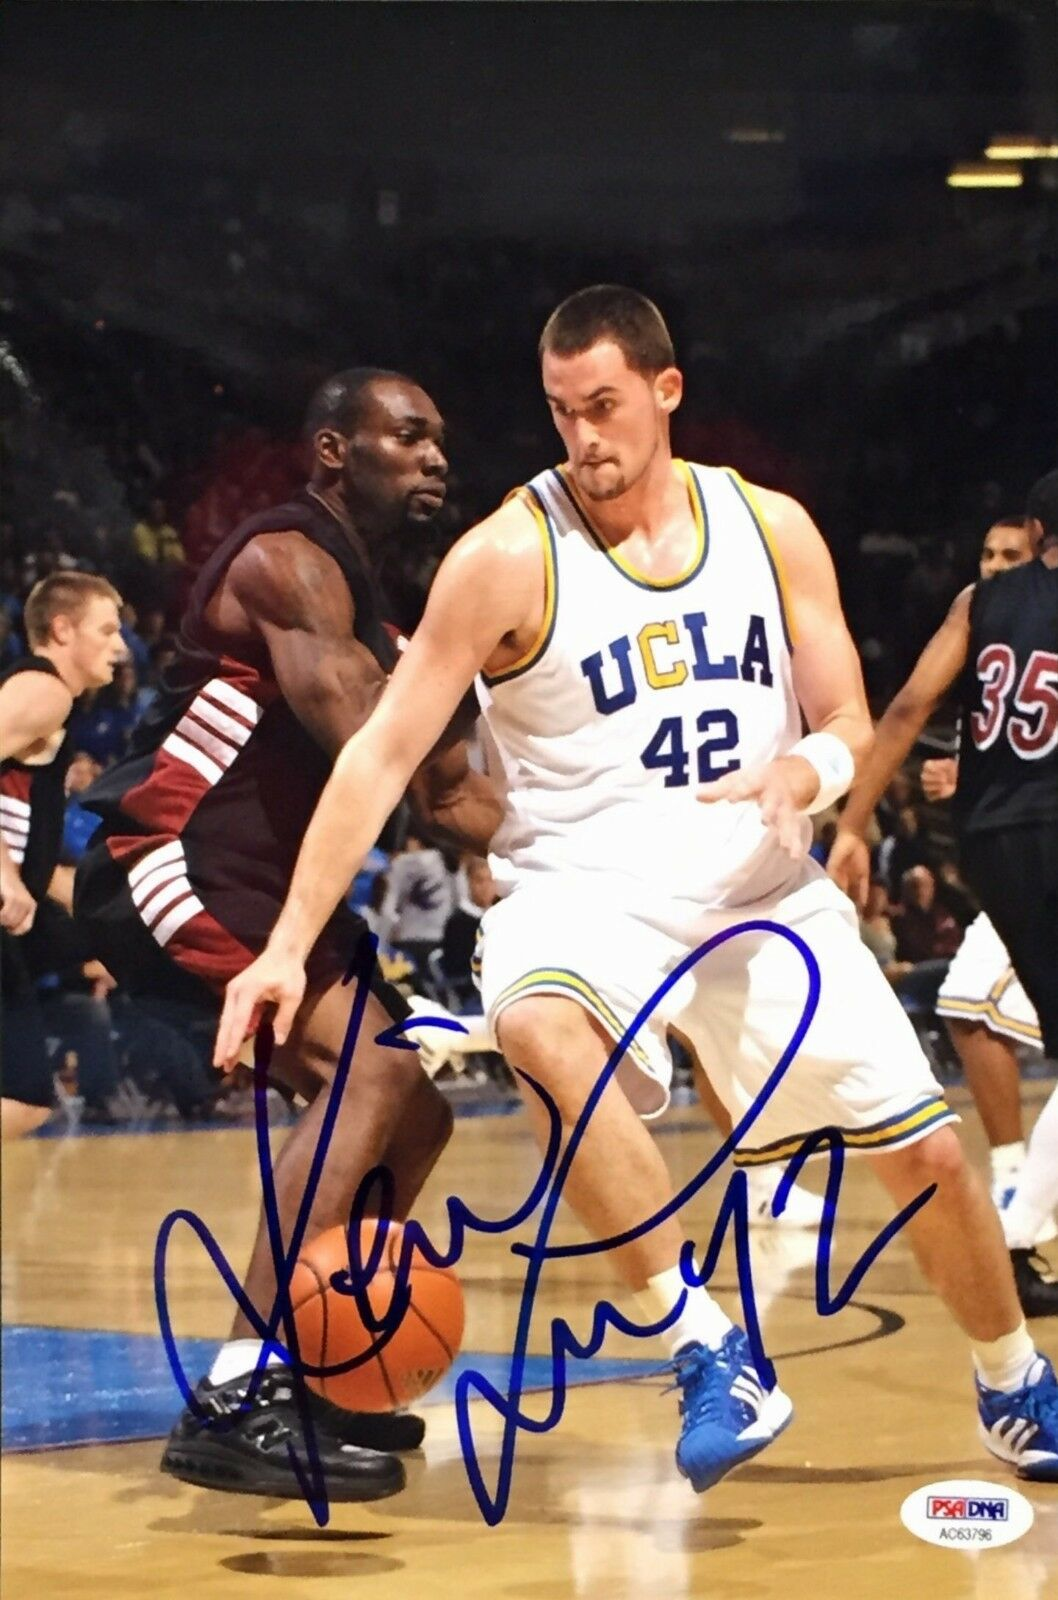 Kevin Love Signed 8x12 UCLA Basketball Photo PSA AC63796